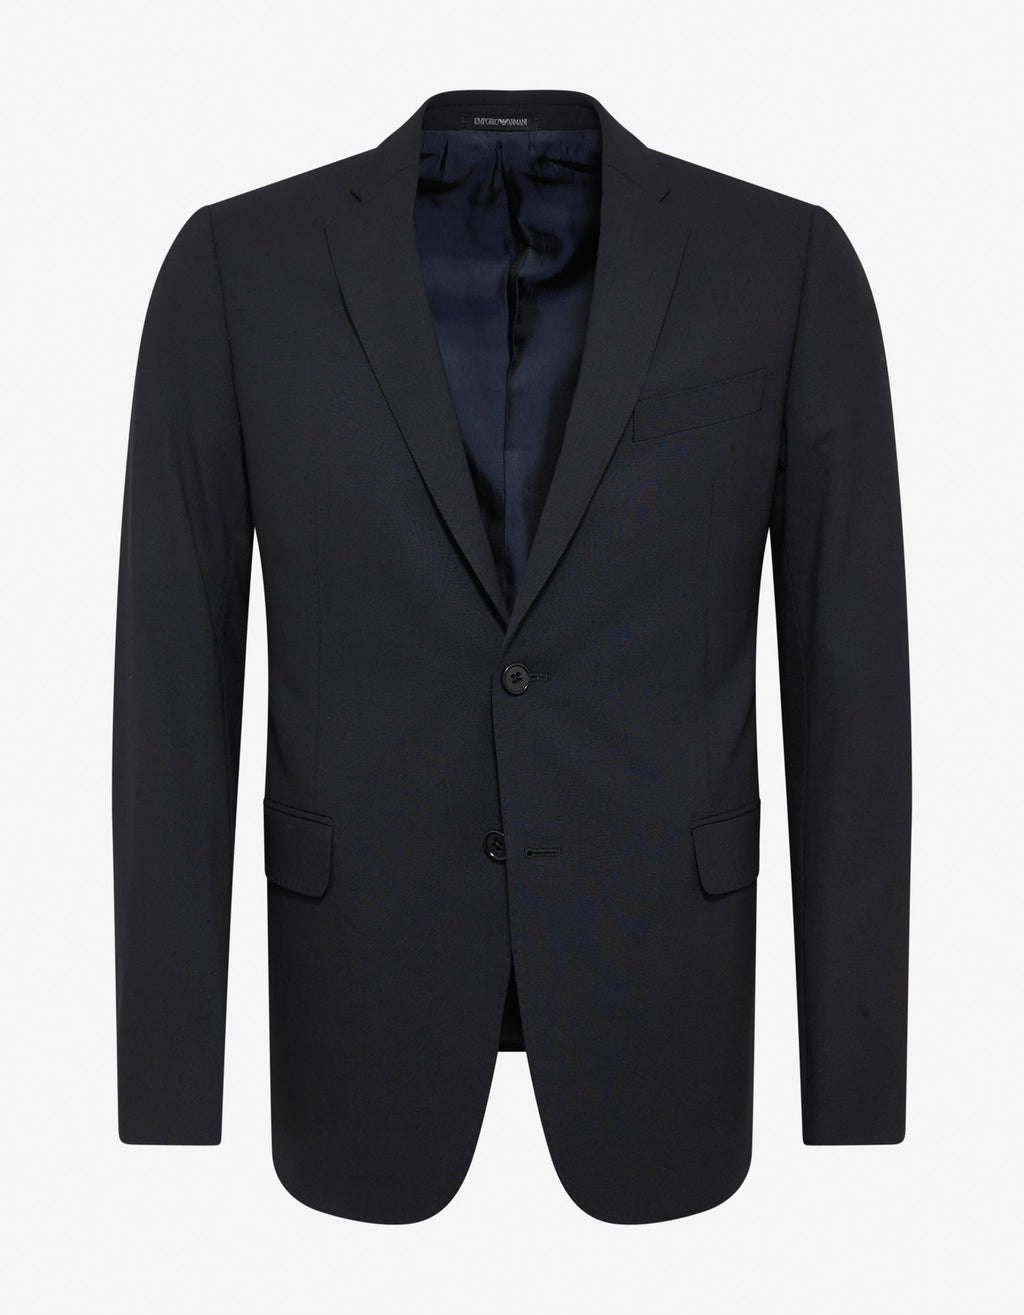 Navy Blue Wool-Blend Two-Button Suit -